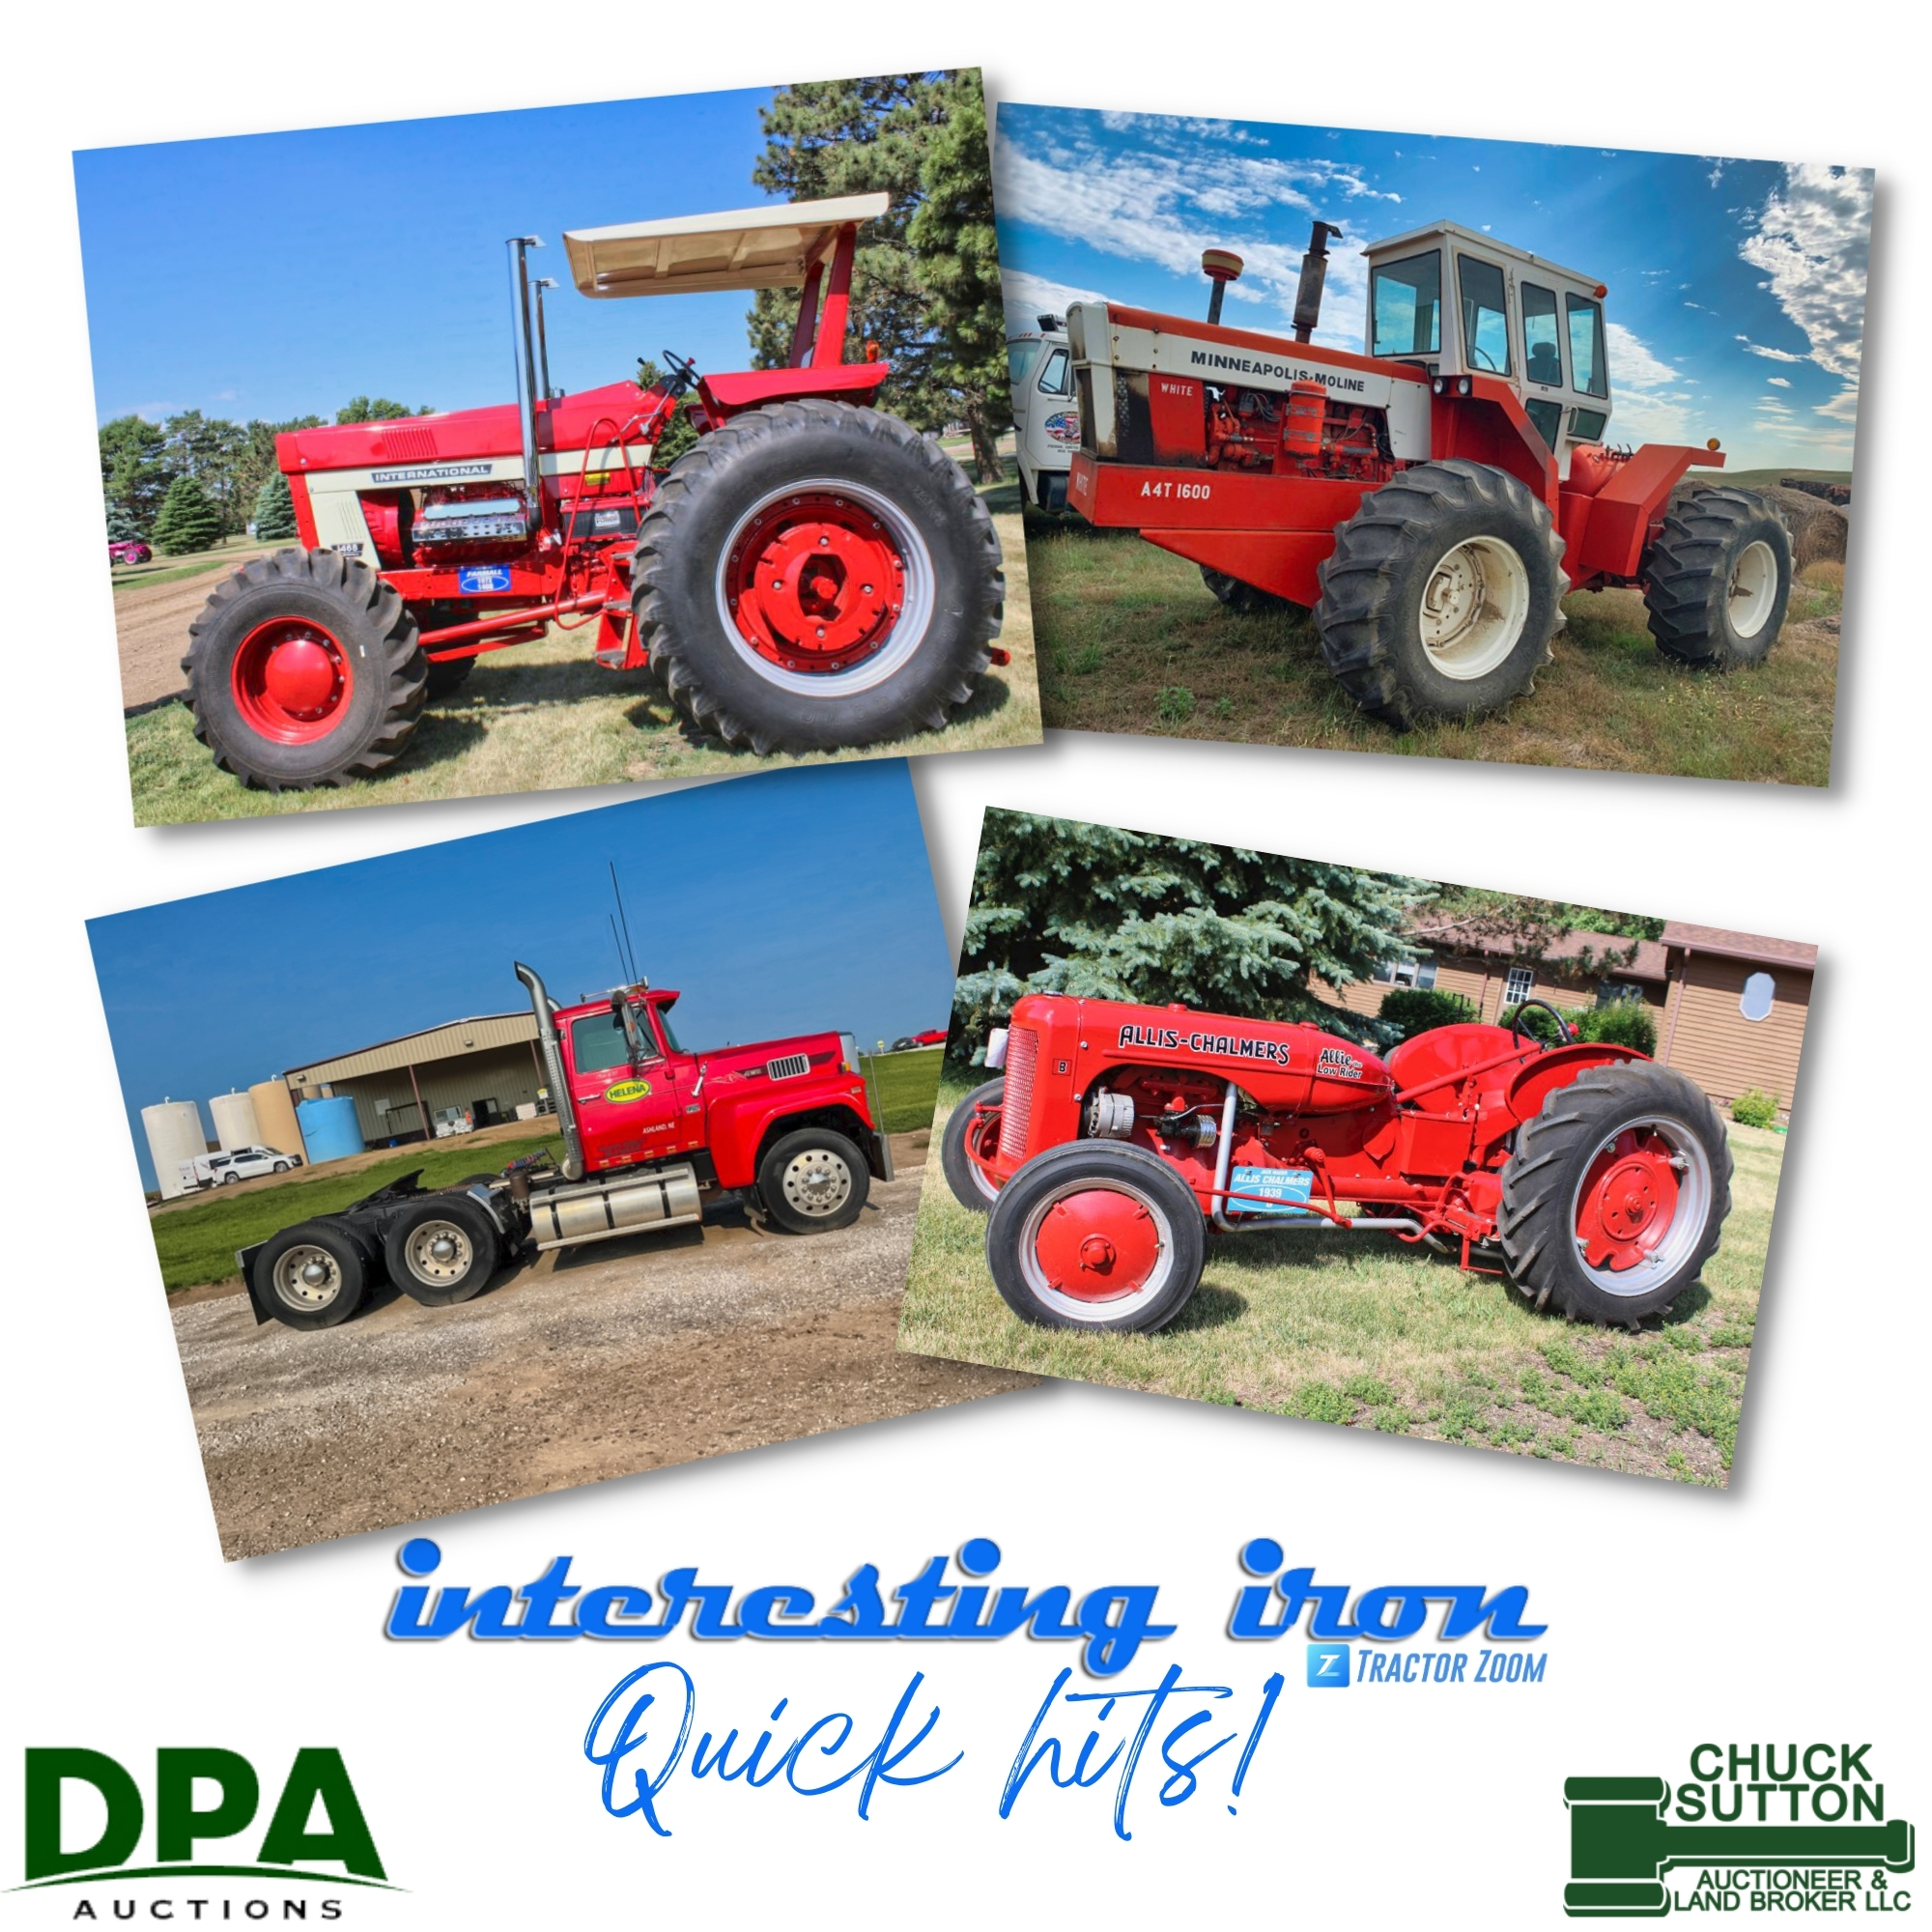 Collage of photos of three red tractors and a semi